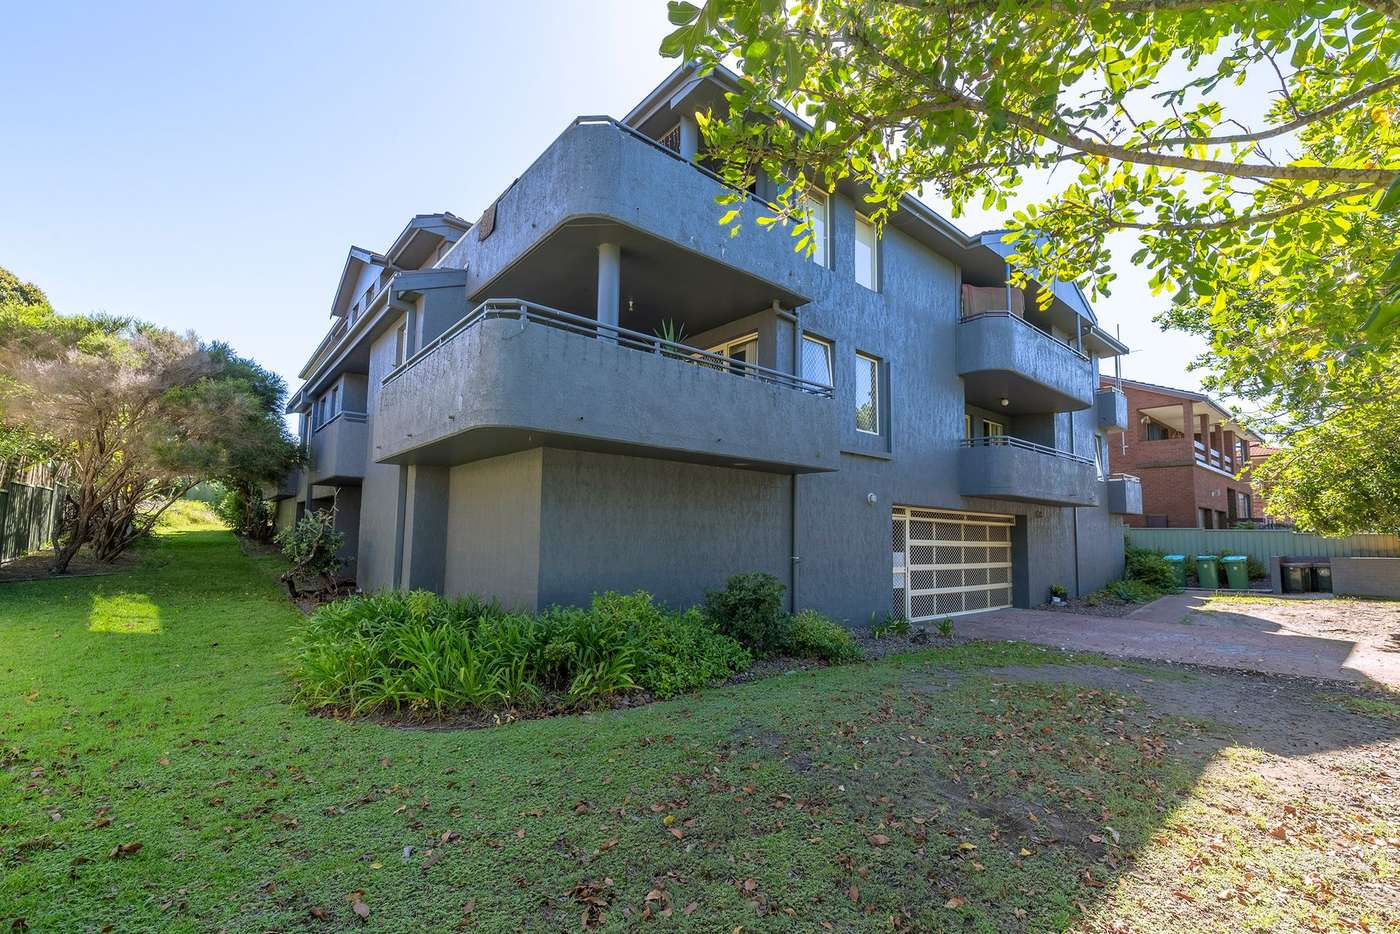 Main view of Homely apartment listing, 7/28 Norberta Street, The Entrance NSW 2261